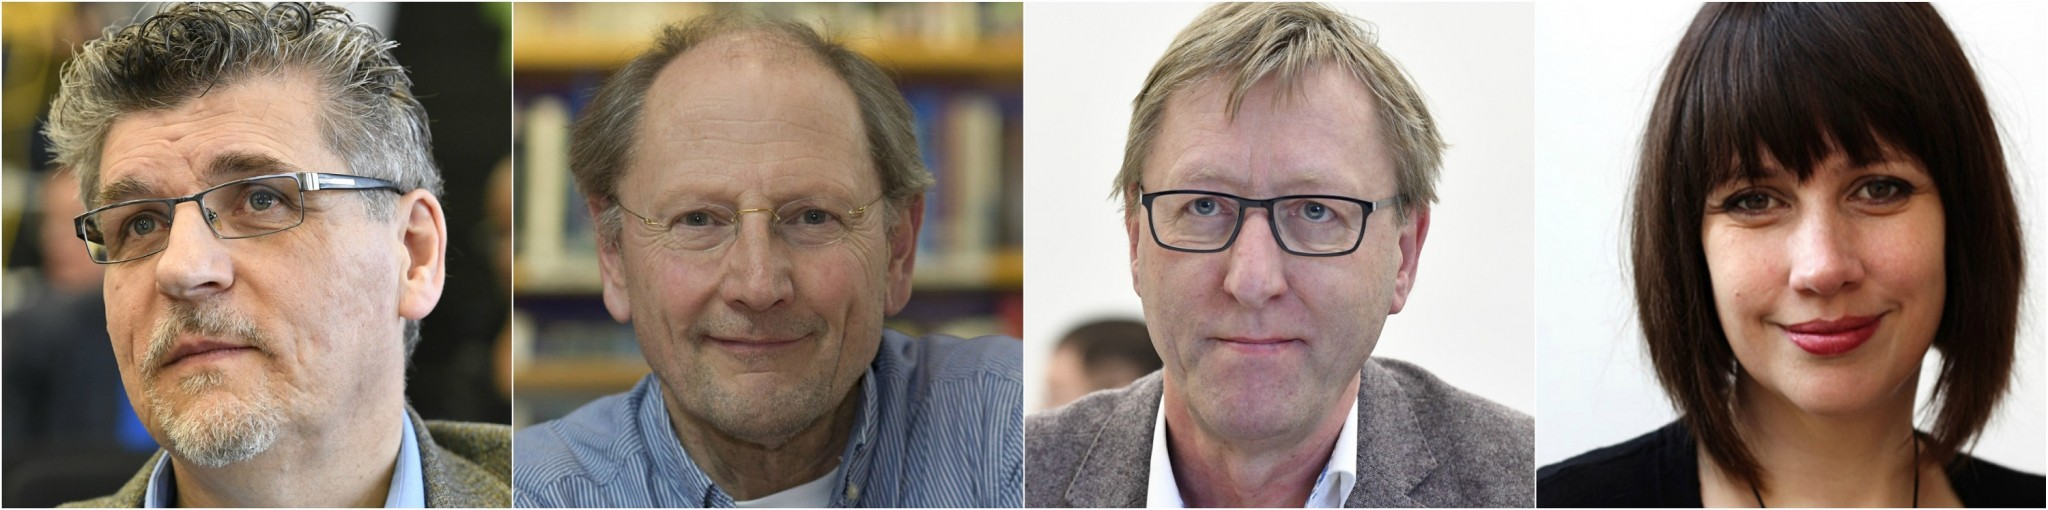 Our next four interviewees (from left), Professors Ron Hugo, Frido Smulders and Aldert Kamp, and Senior Lecturer Suzanne Hallenga-Brink. Photos: Skoltech, Delft University of Technology, and The Hague University of Applied Sciences.